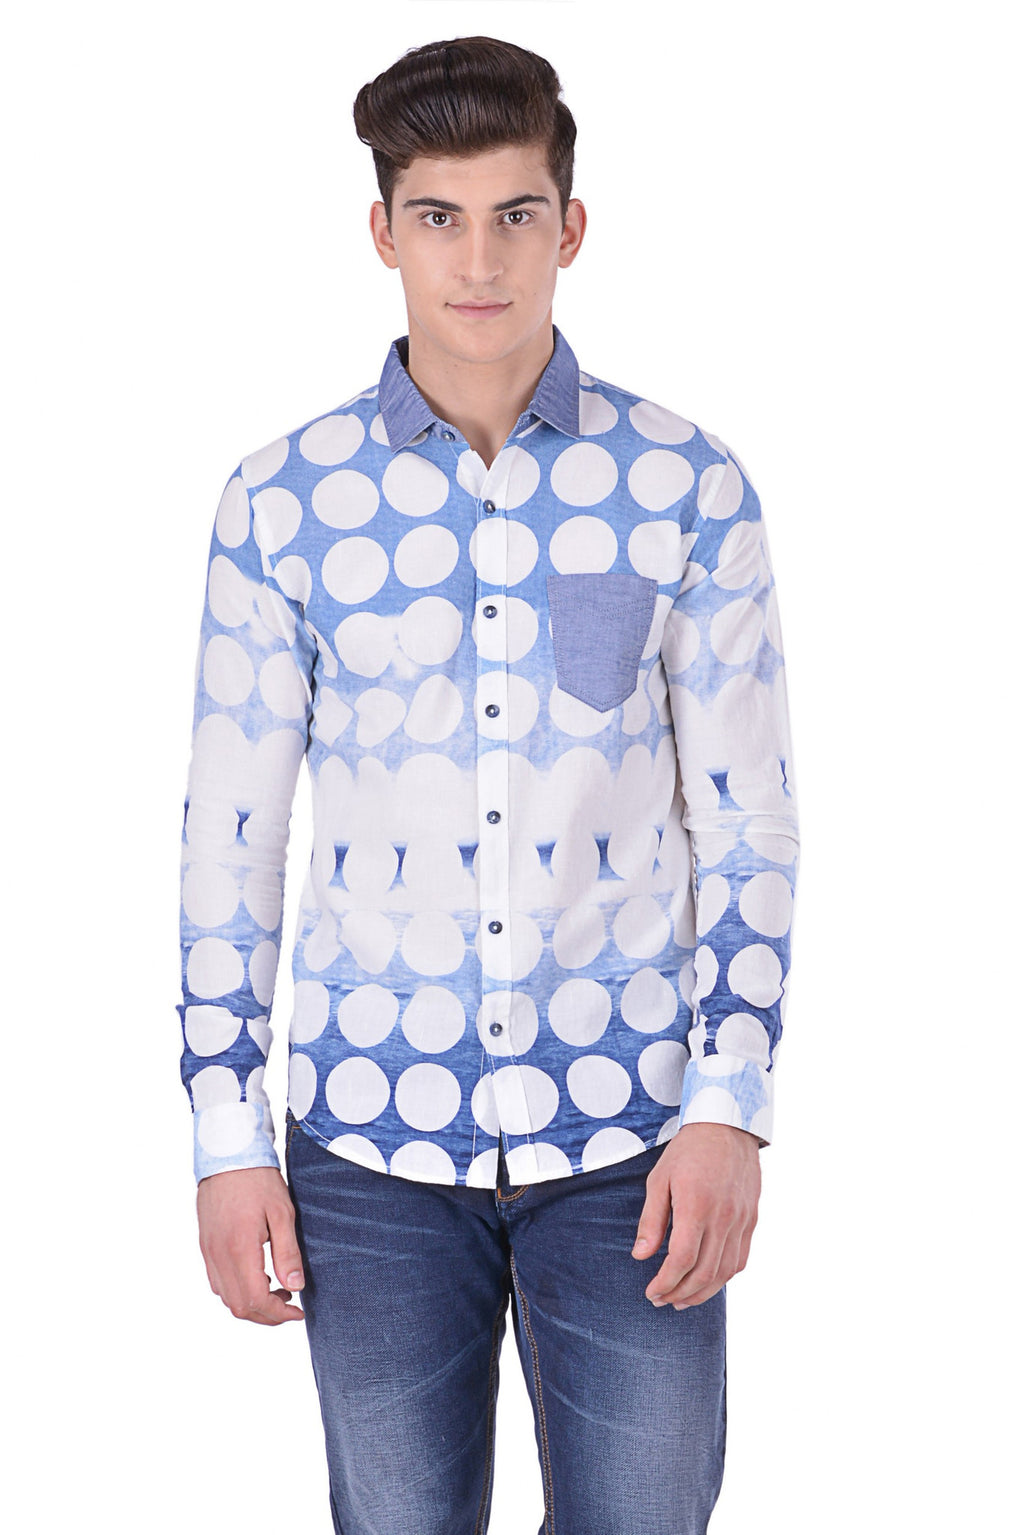 Hoffmen Men's Casual Shirt CR6053